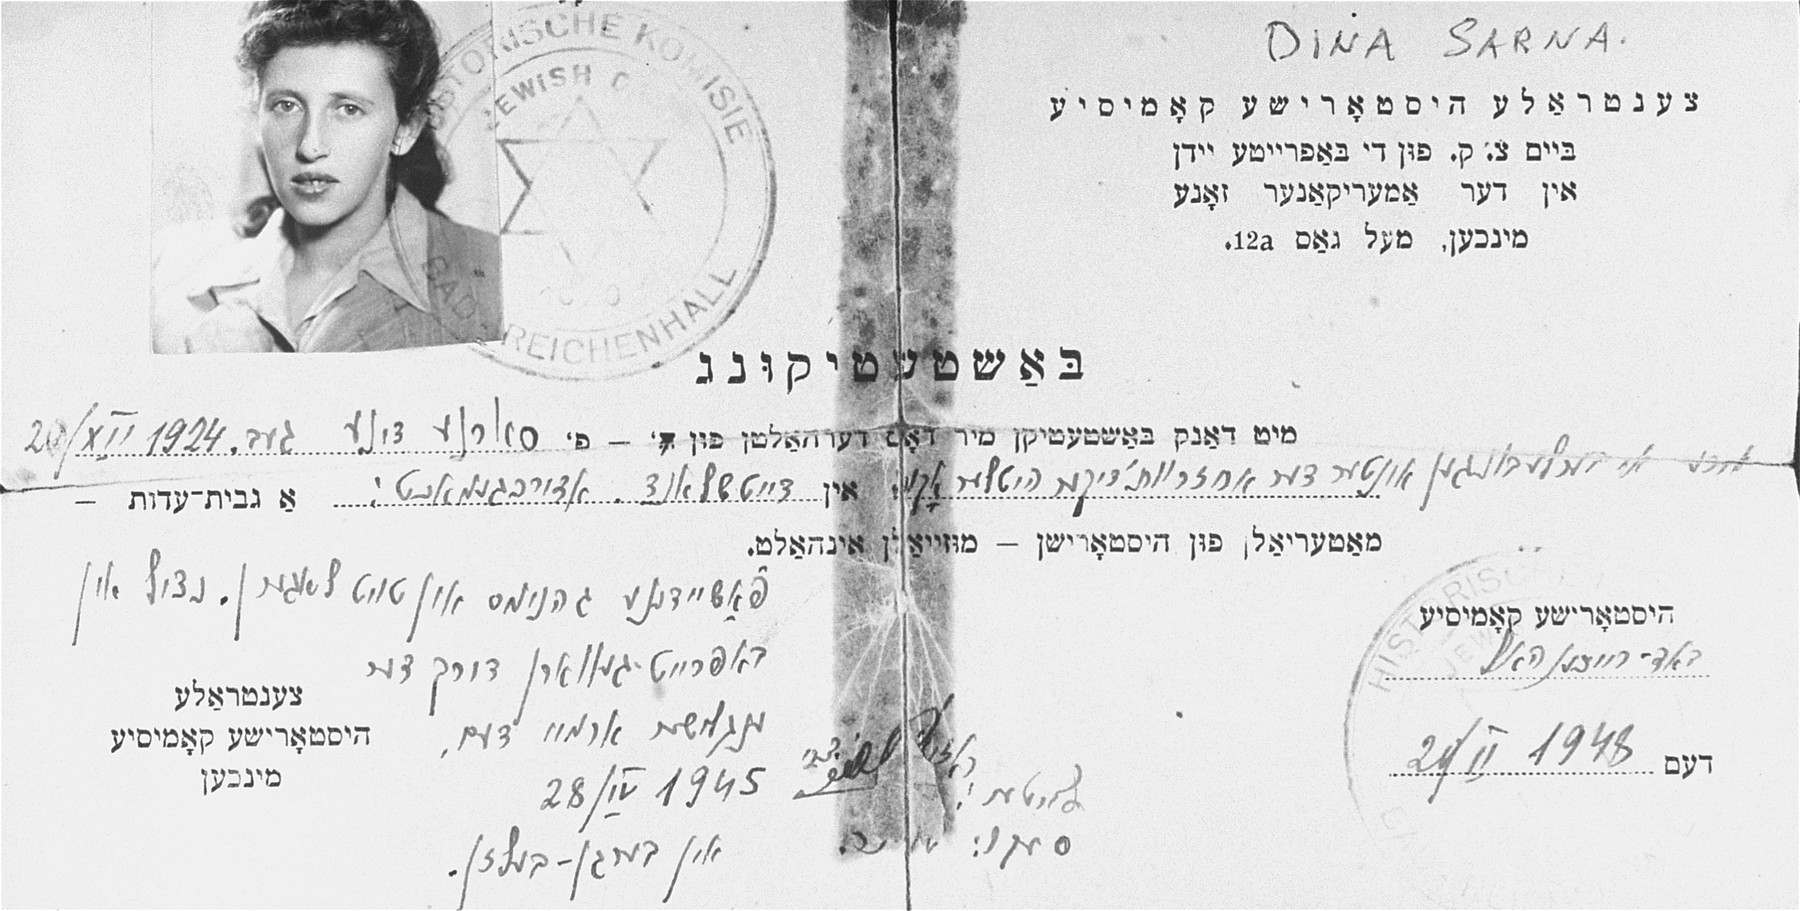 The release papers of Dina Sarna from the Bad Reichenhall D.P. camp, stamped Feb. 24, 1948, and issued by the Central Historical Commission in Munich.